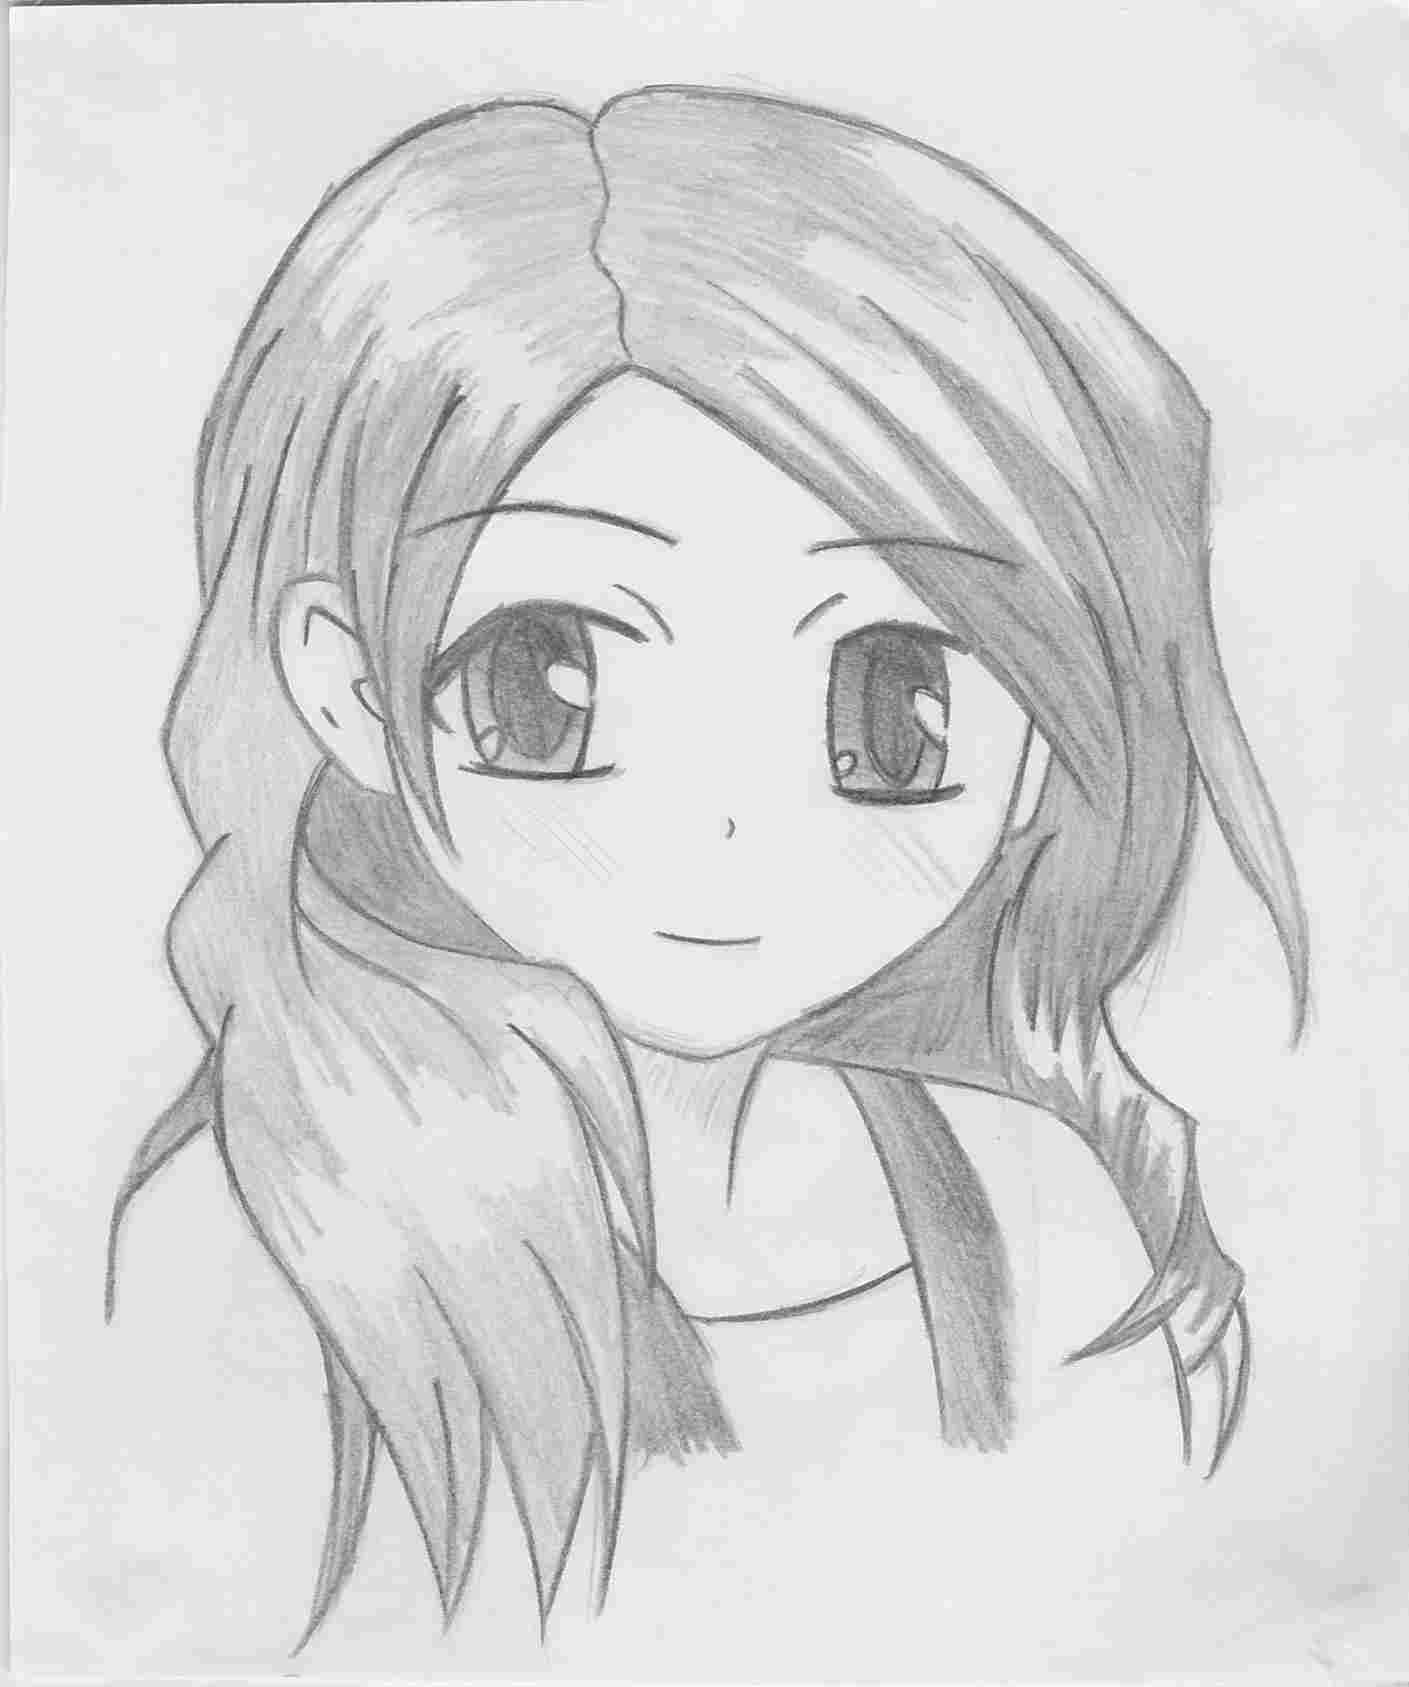 anime girl easy to draw cute anime drawings at paintingvalleycom explore easy draw girl to anime